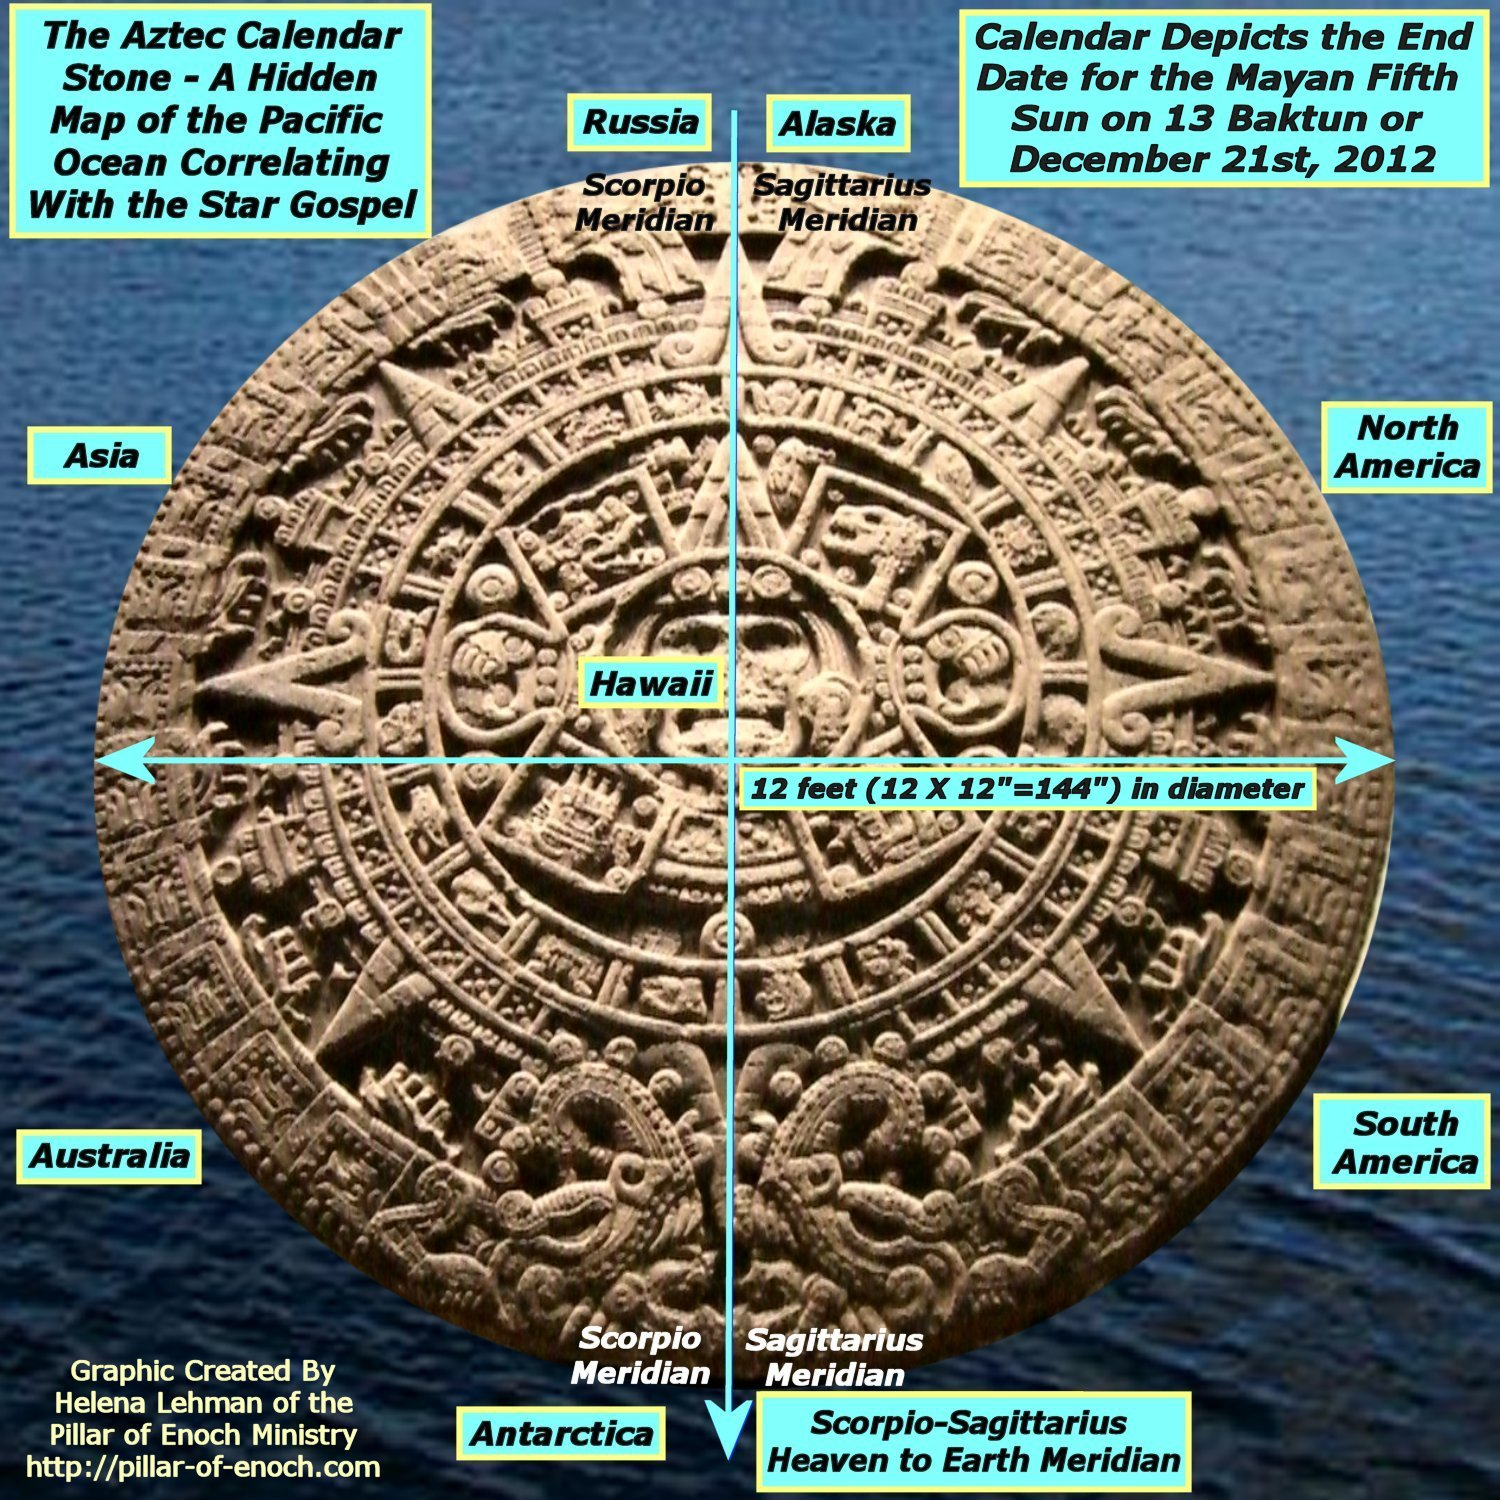 Pillar Of Enoch Ministry Blog Mayan Age End 13 Ahau